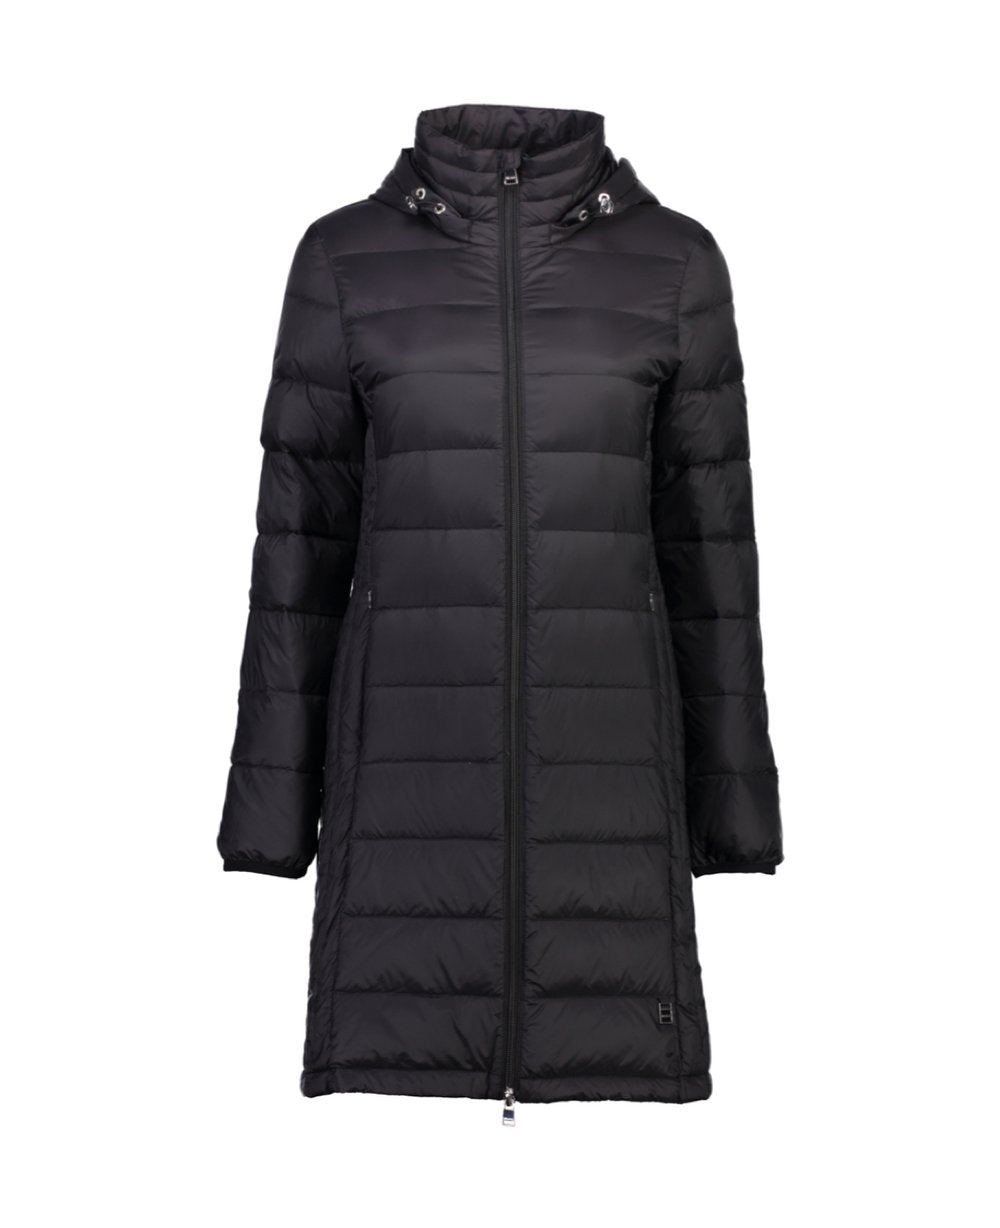 Moke Sarah Long Ladies Hooded 90/10 Down Jacket - Black